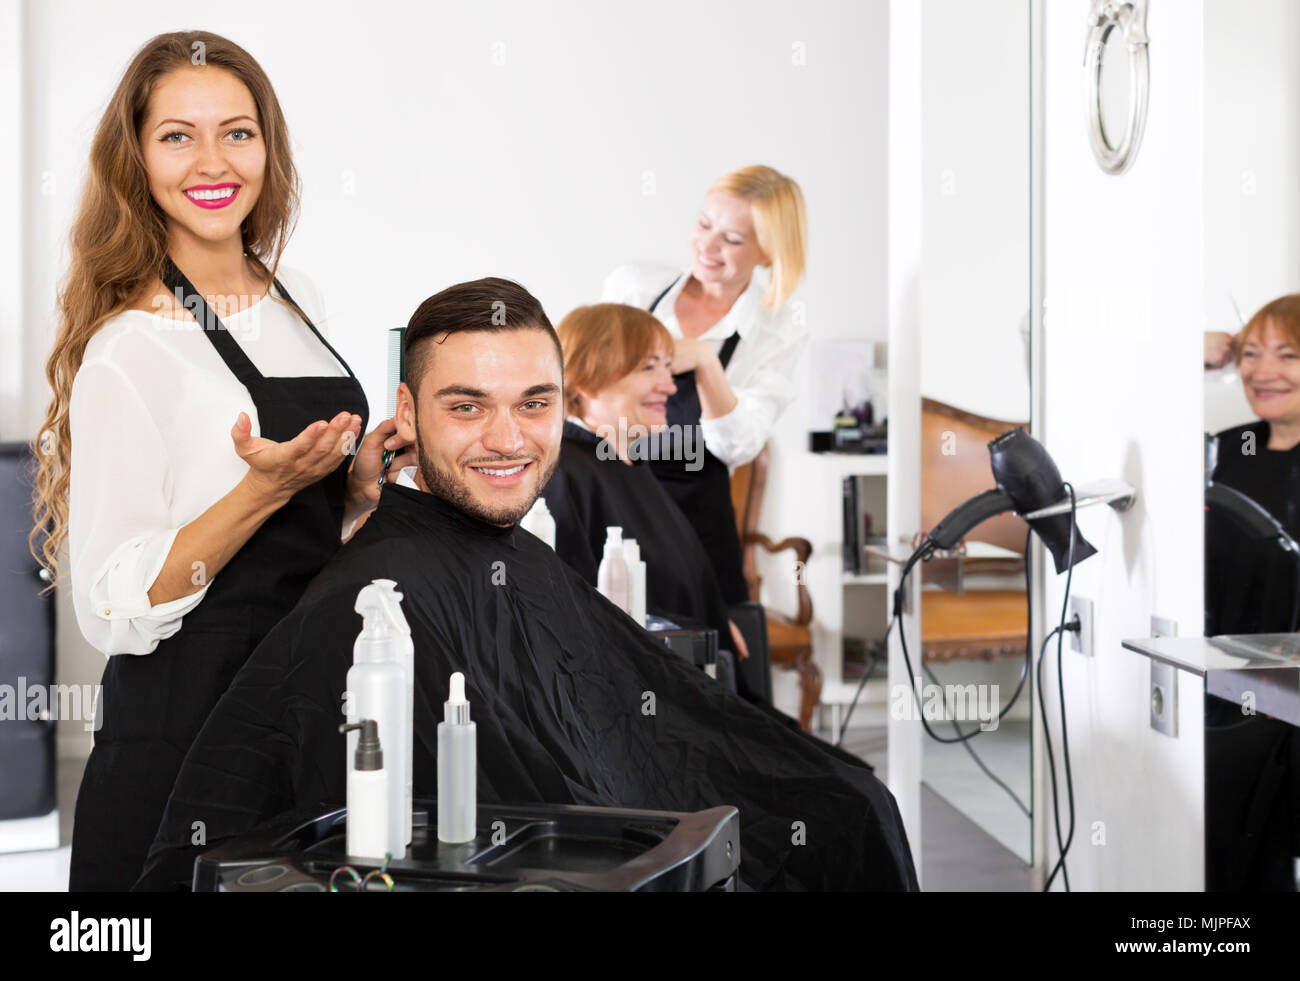 Happy young guy cuts hair at the hair salon Stock Photo - Alamy